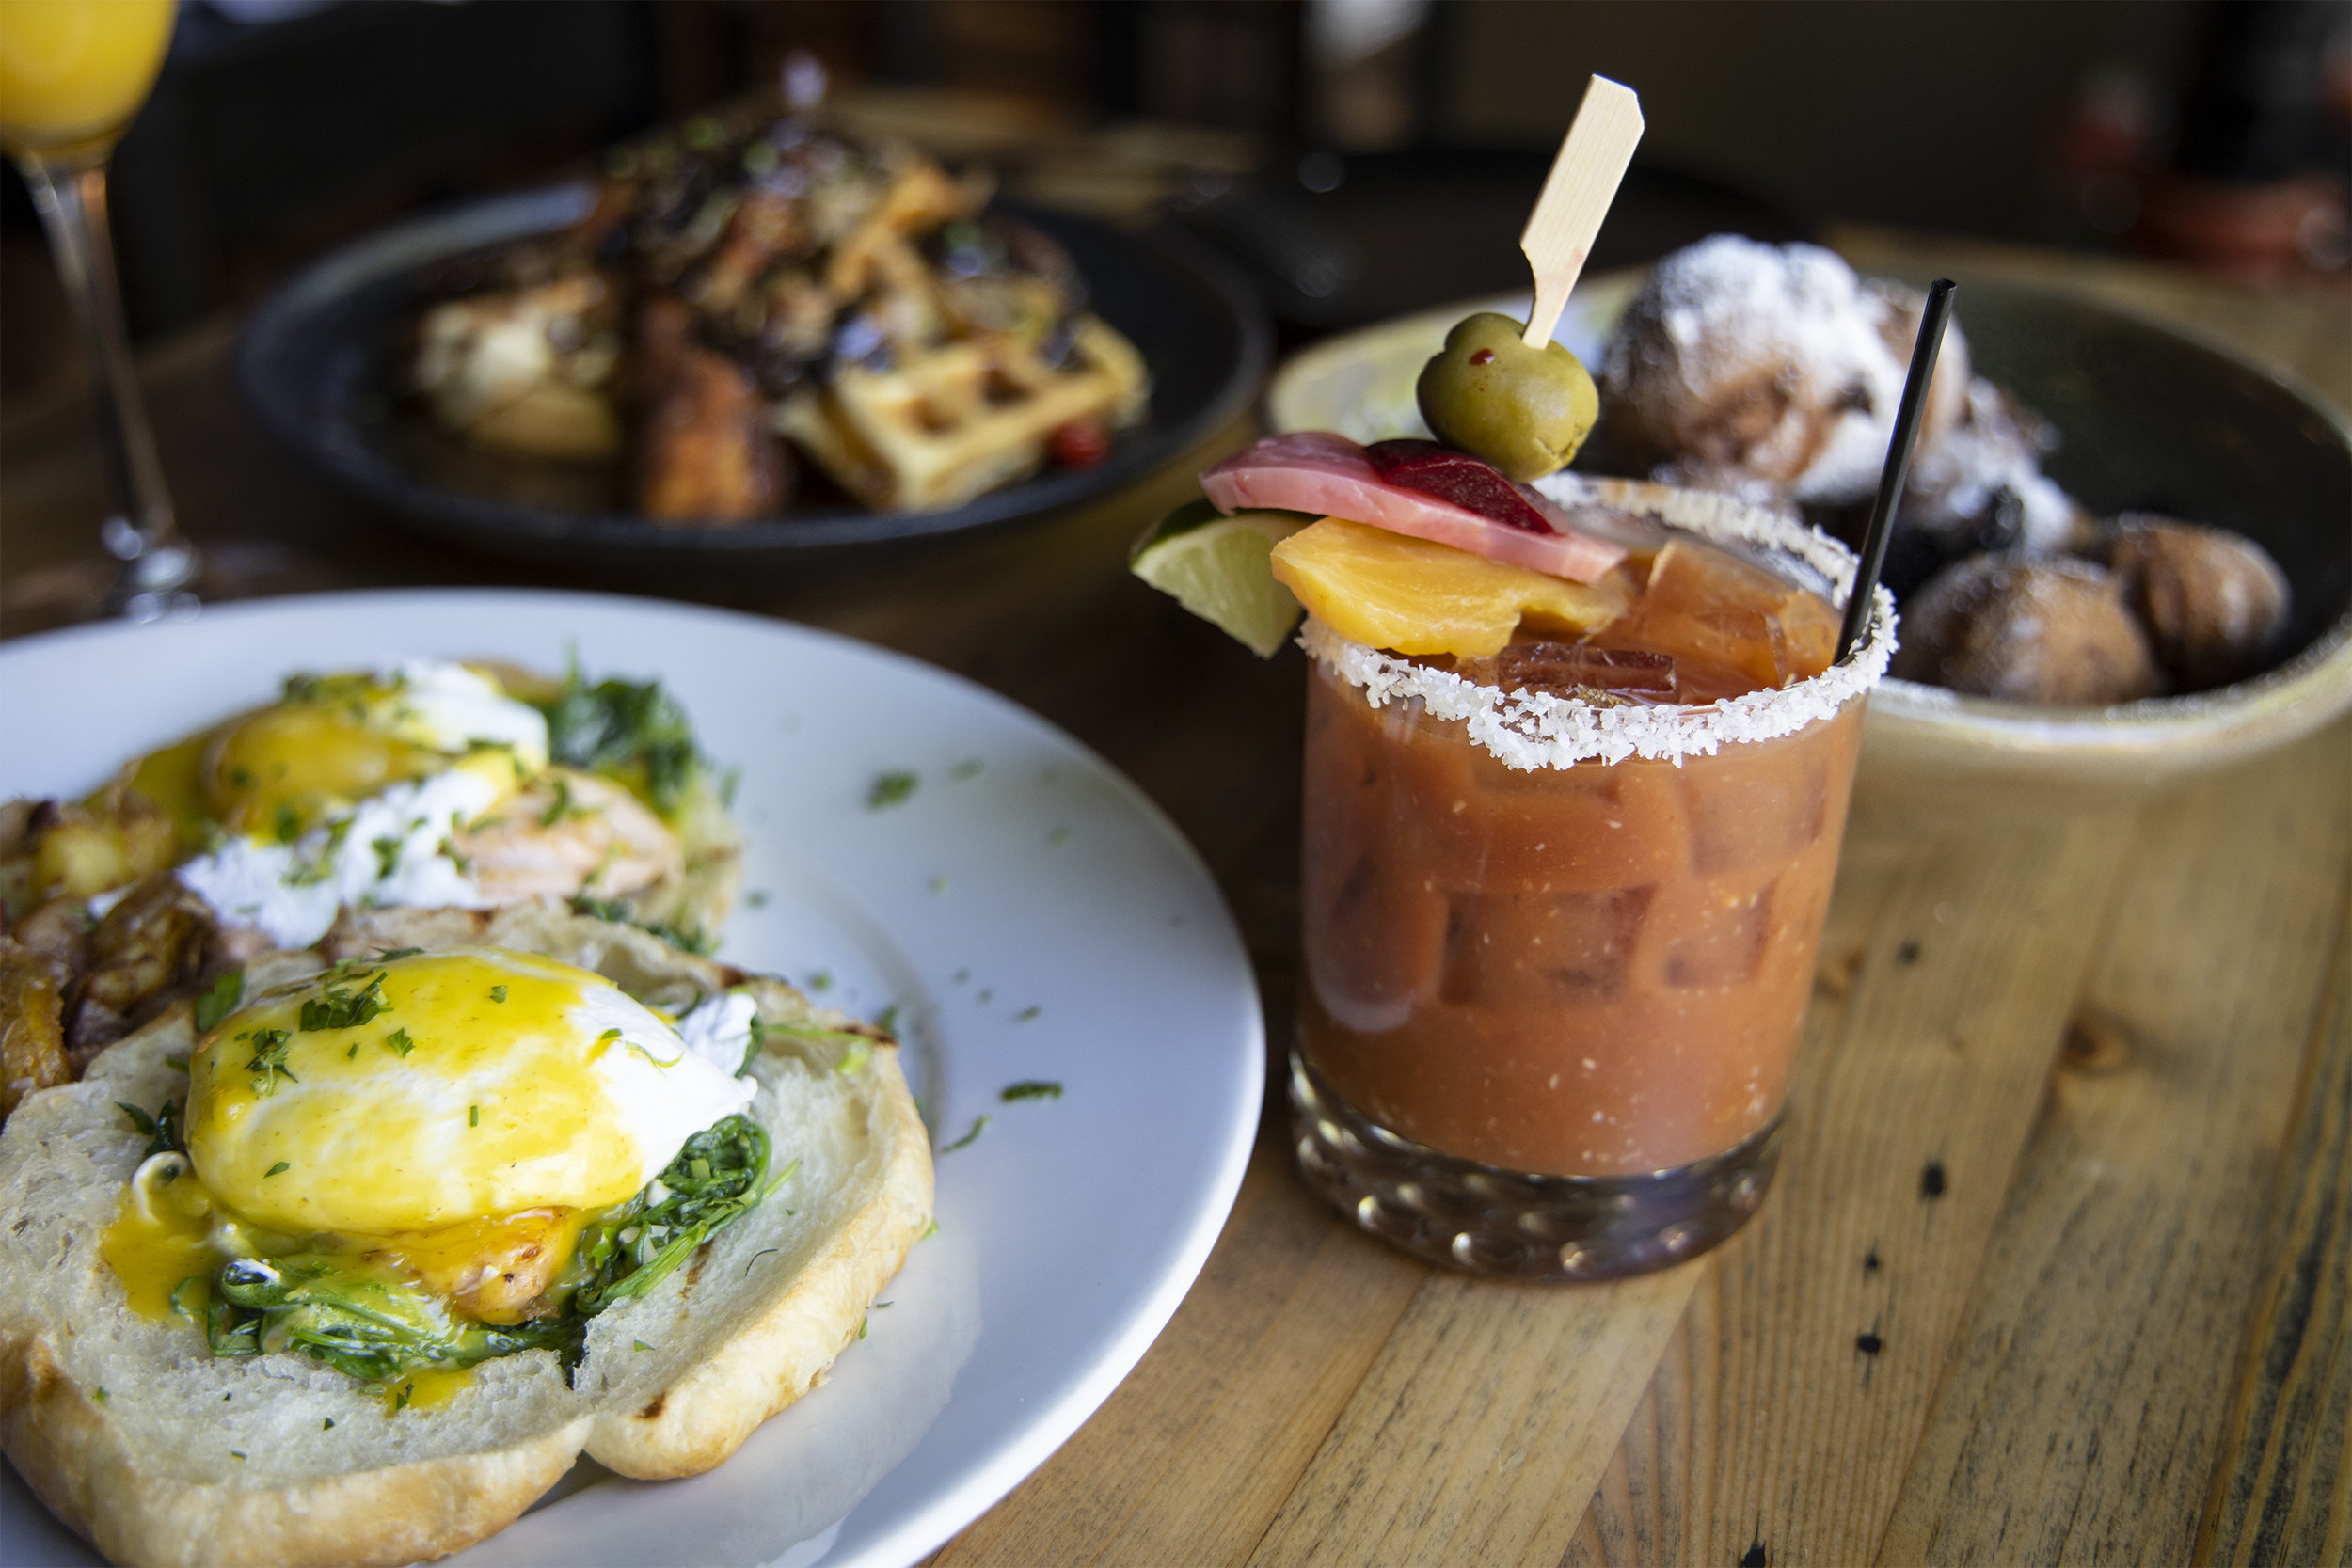 Bloody Mary, Chicken and Waffles, Eggs Benedict and more.